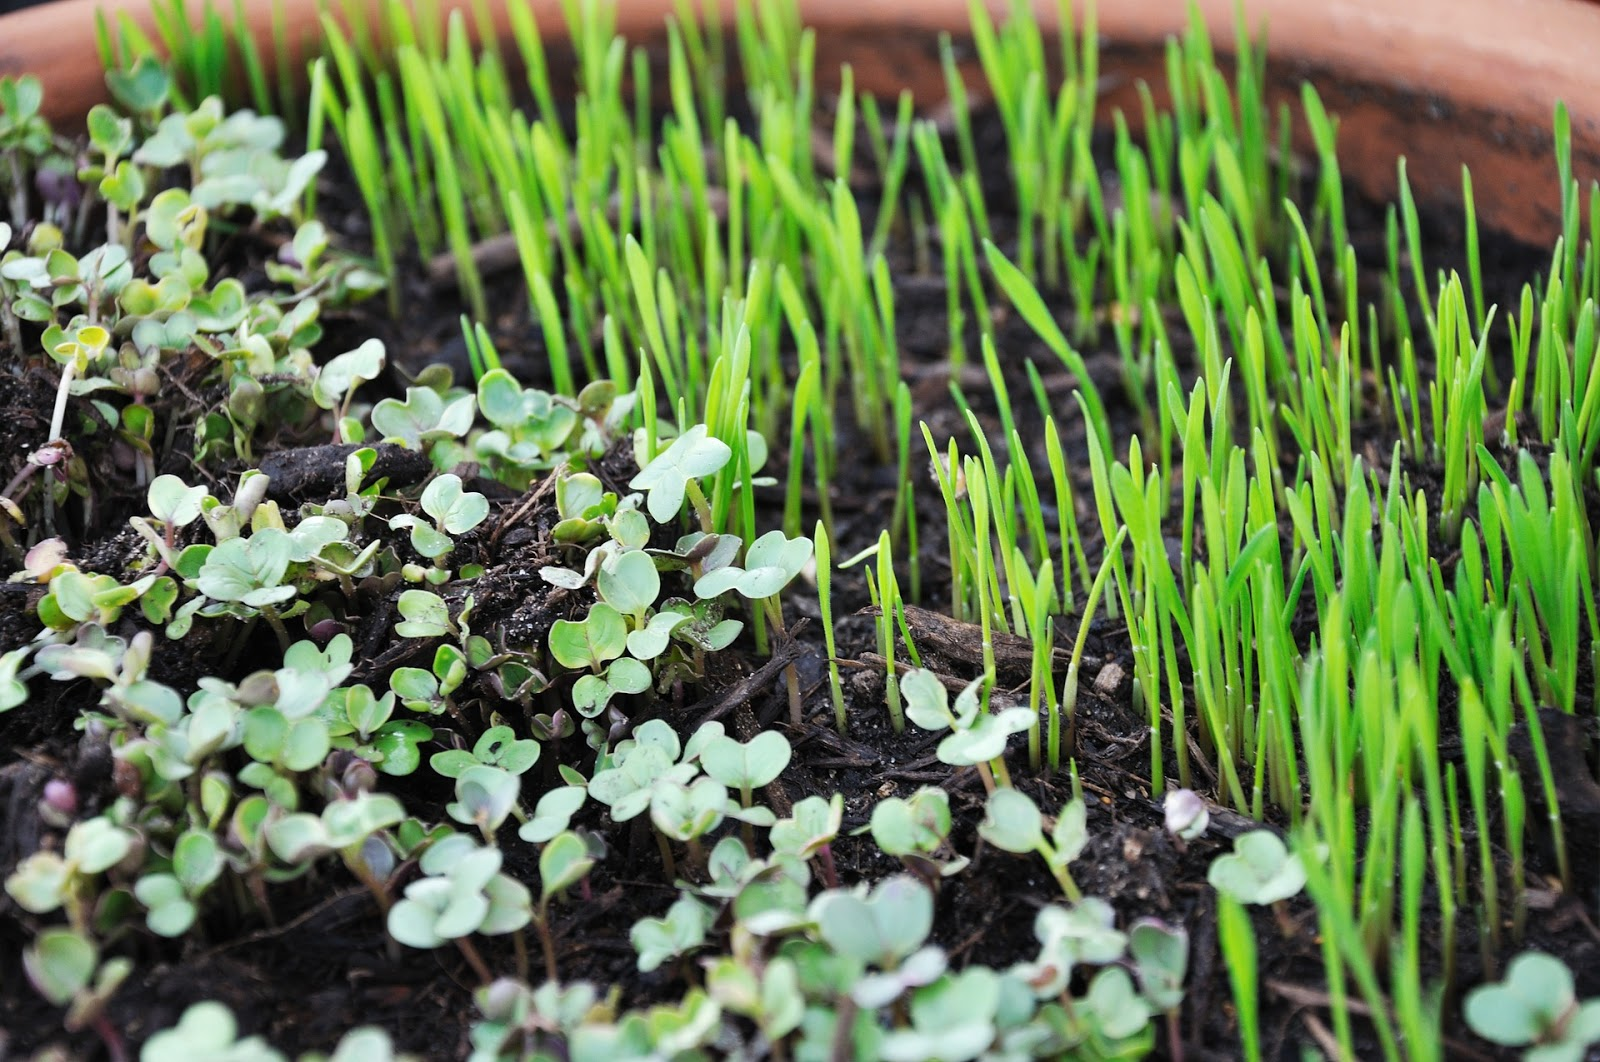 Photograph: microgreens of brocoli and cebollín.